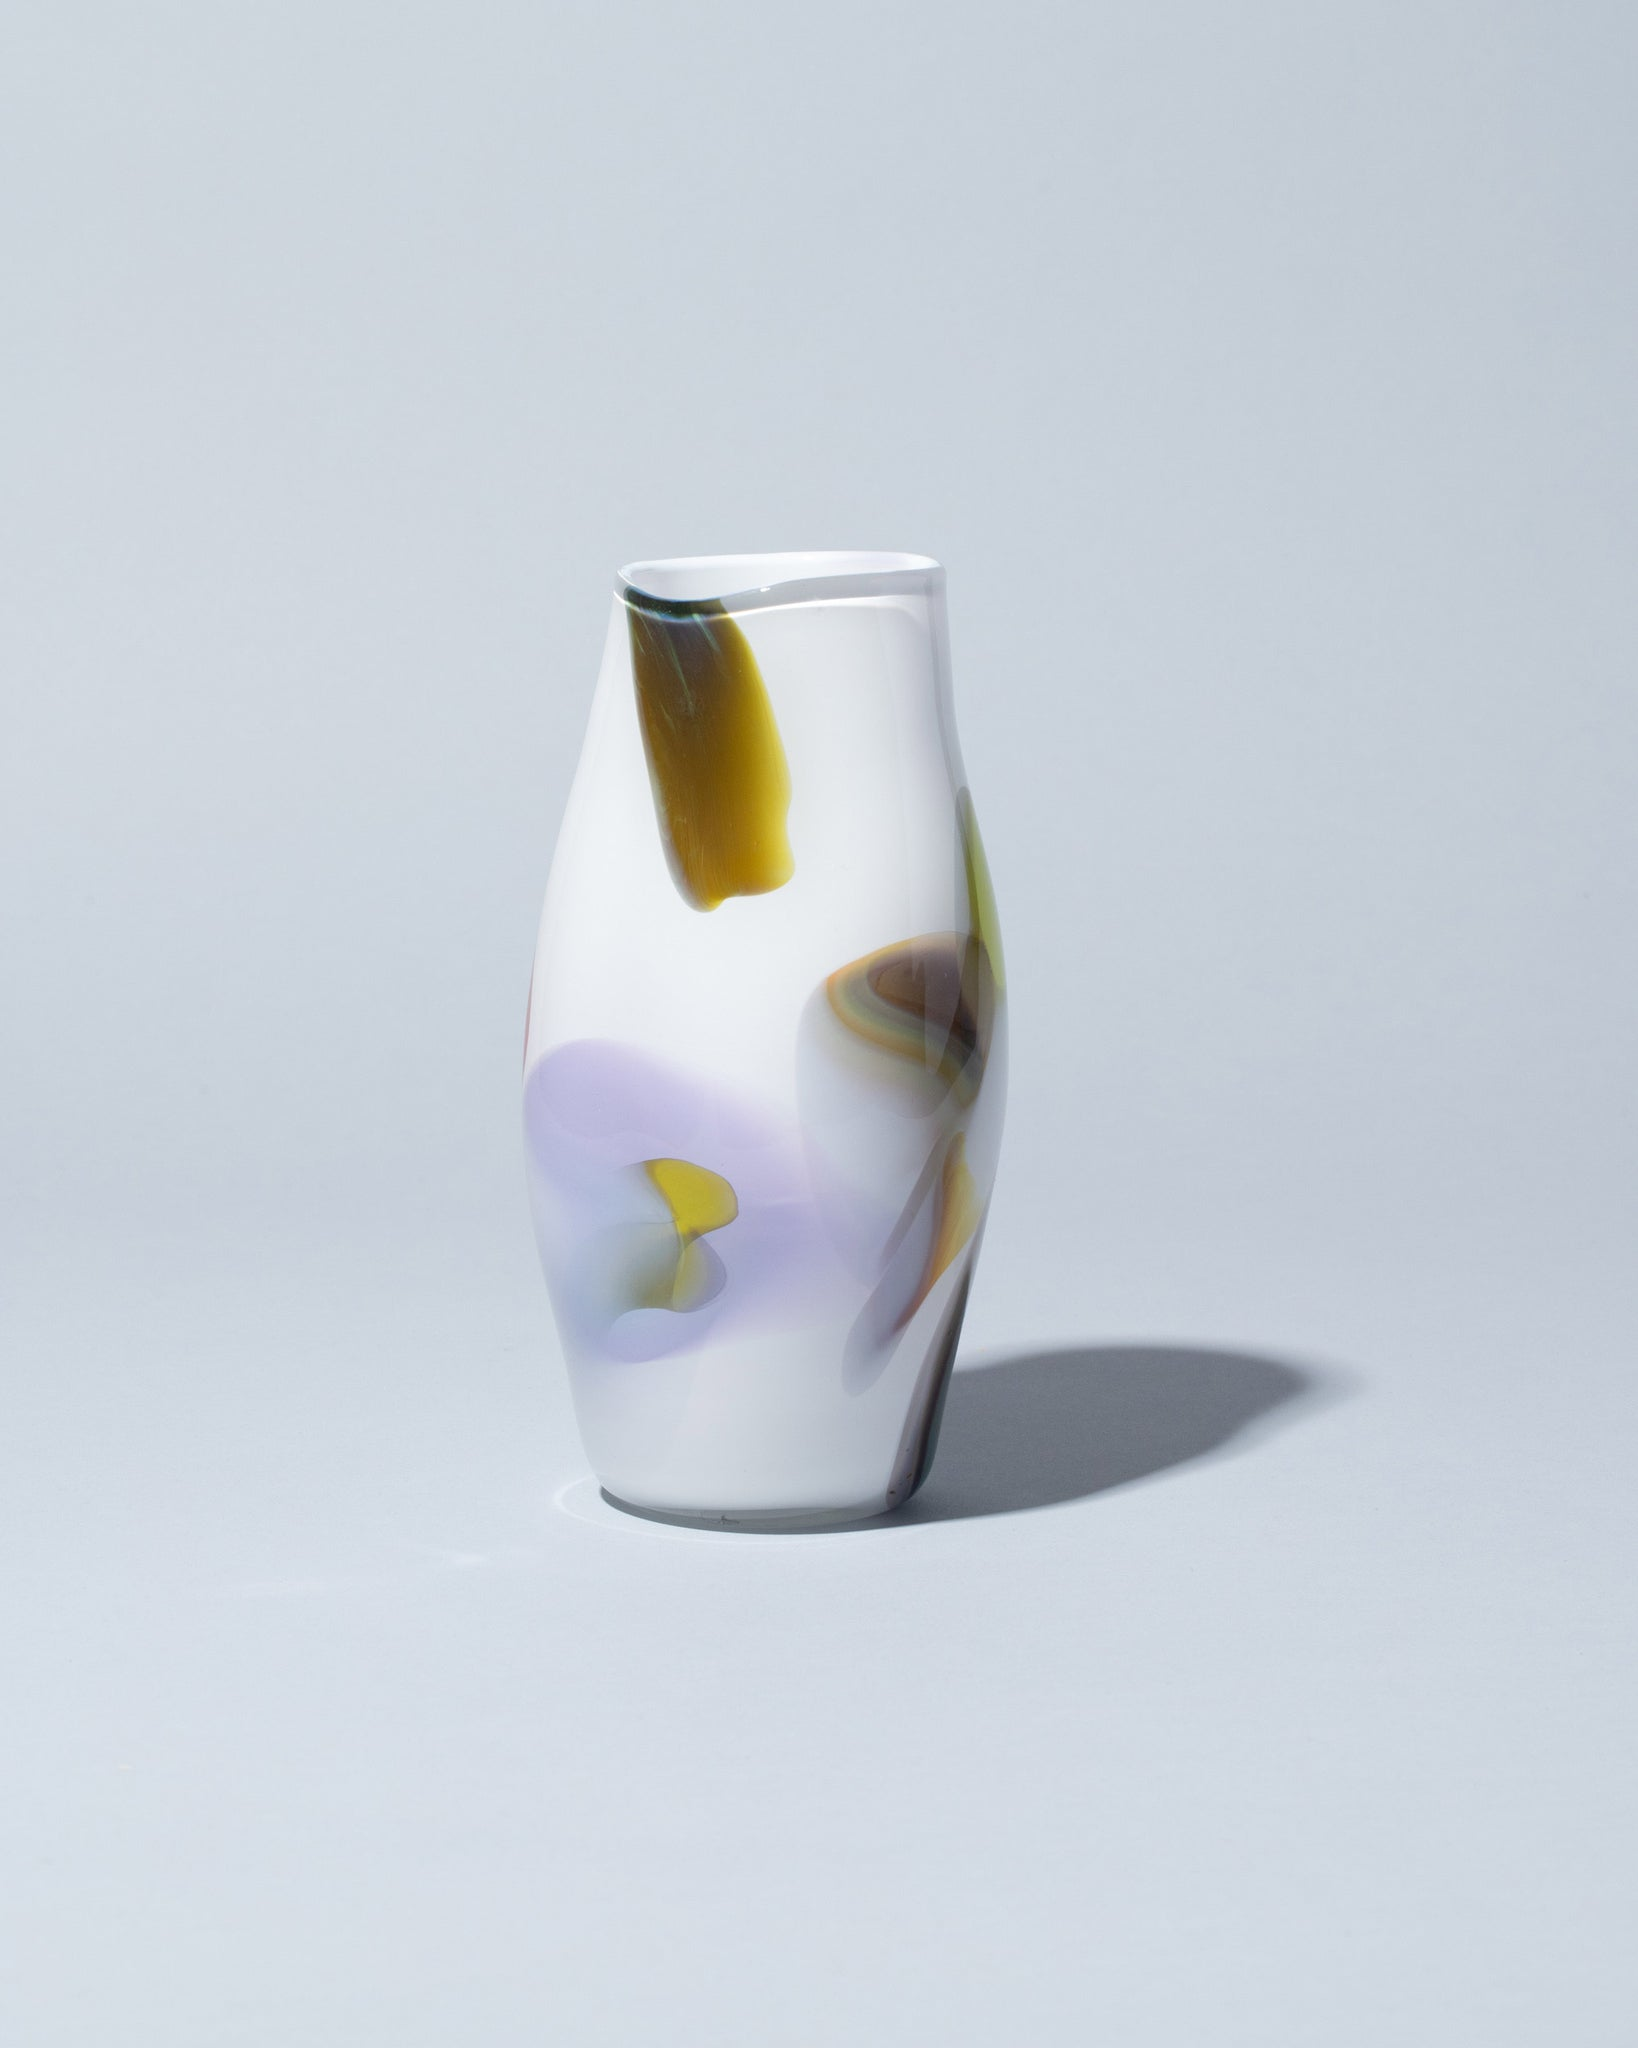 BaleFire Glass Epiphany Vase on light color background